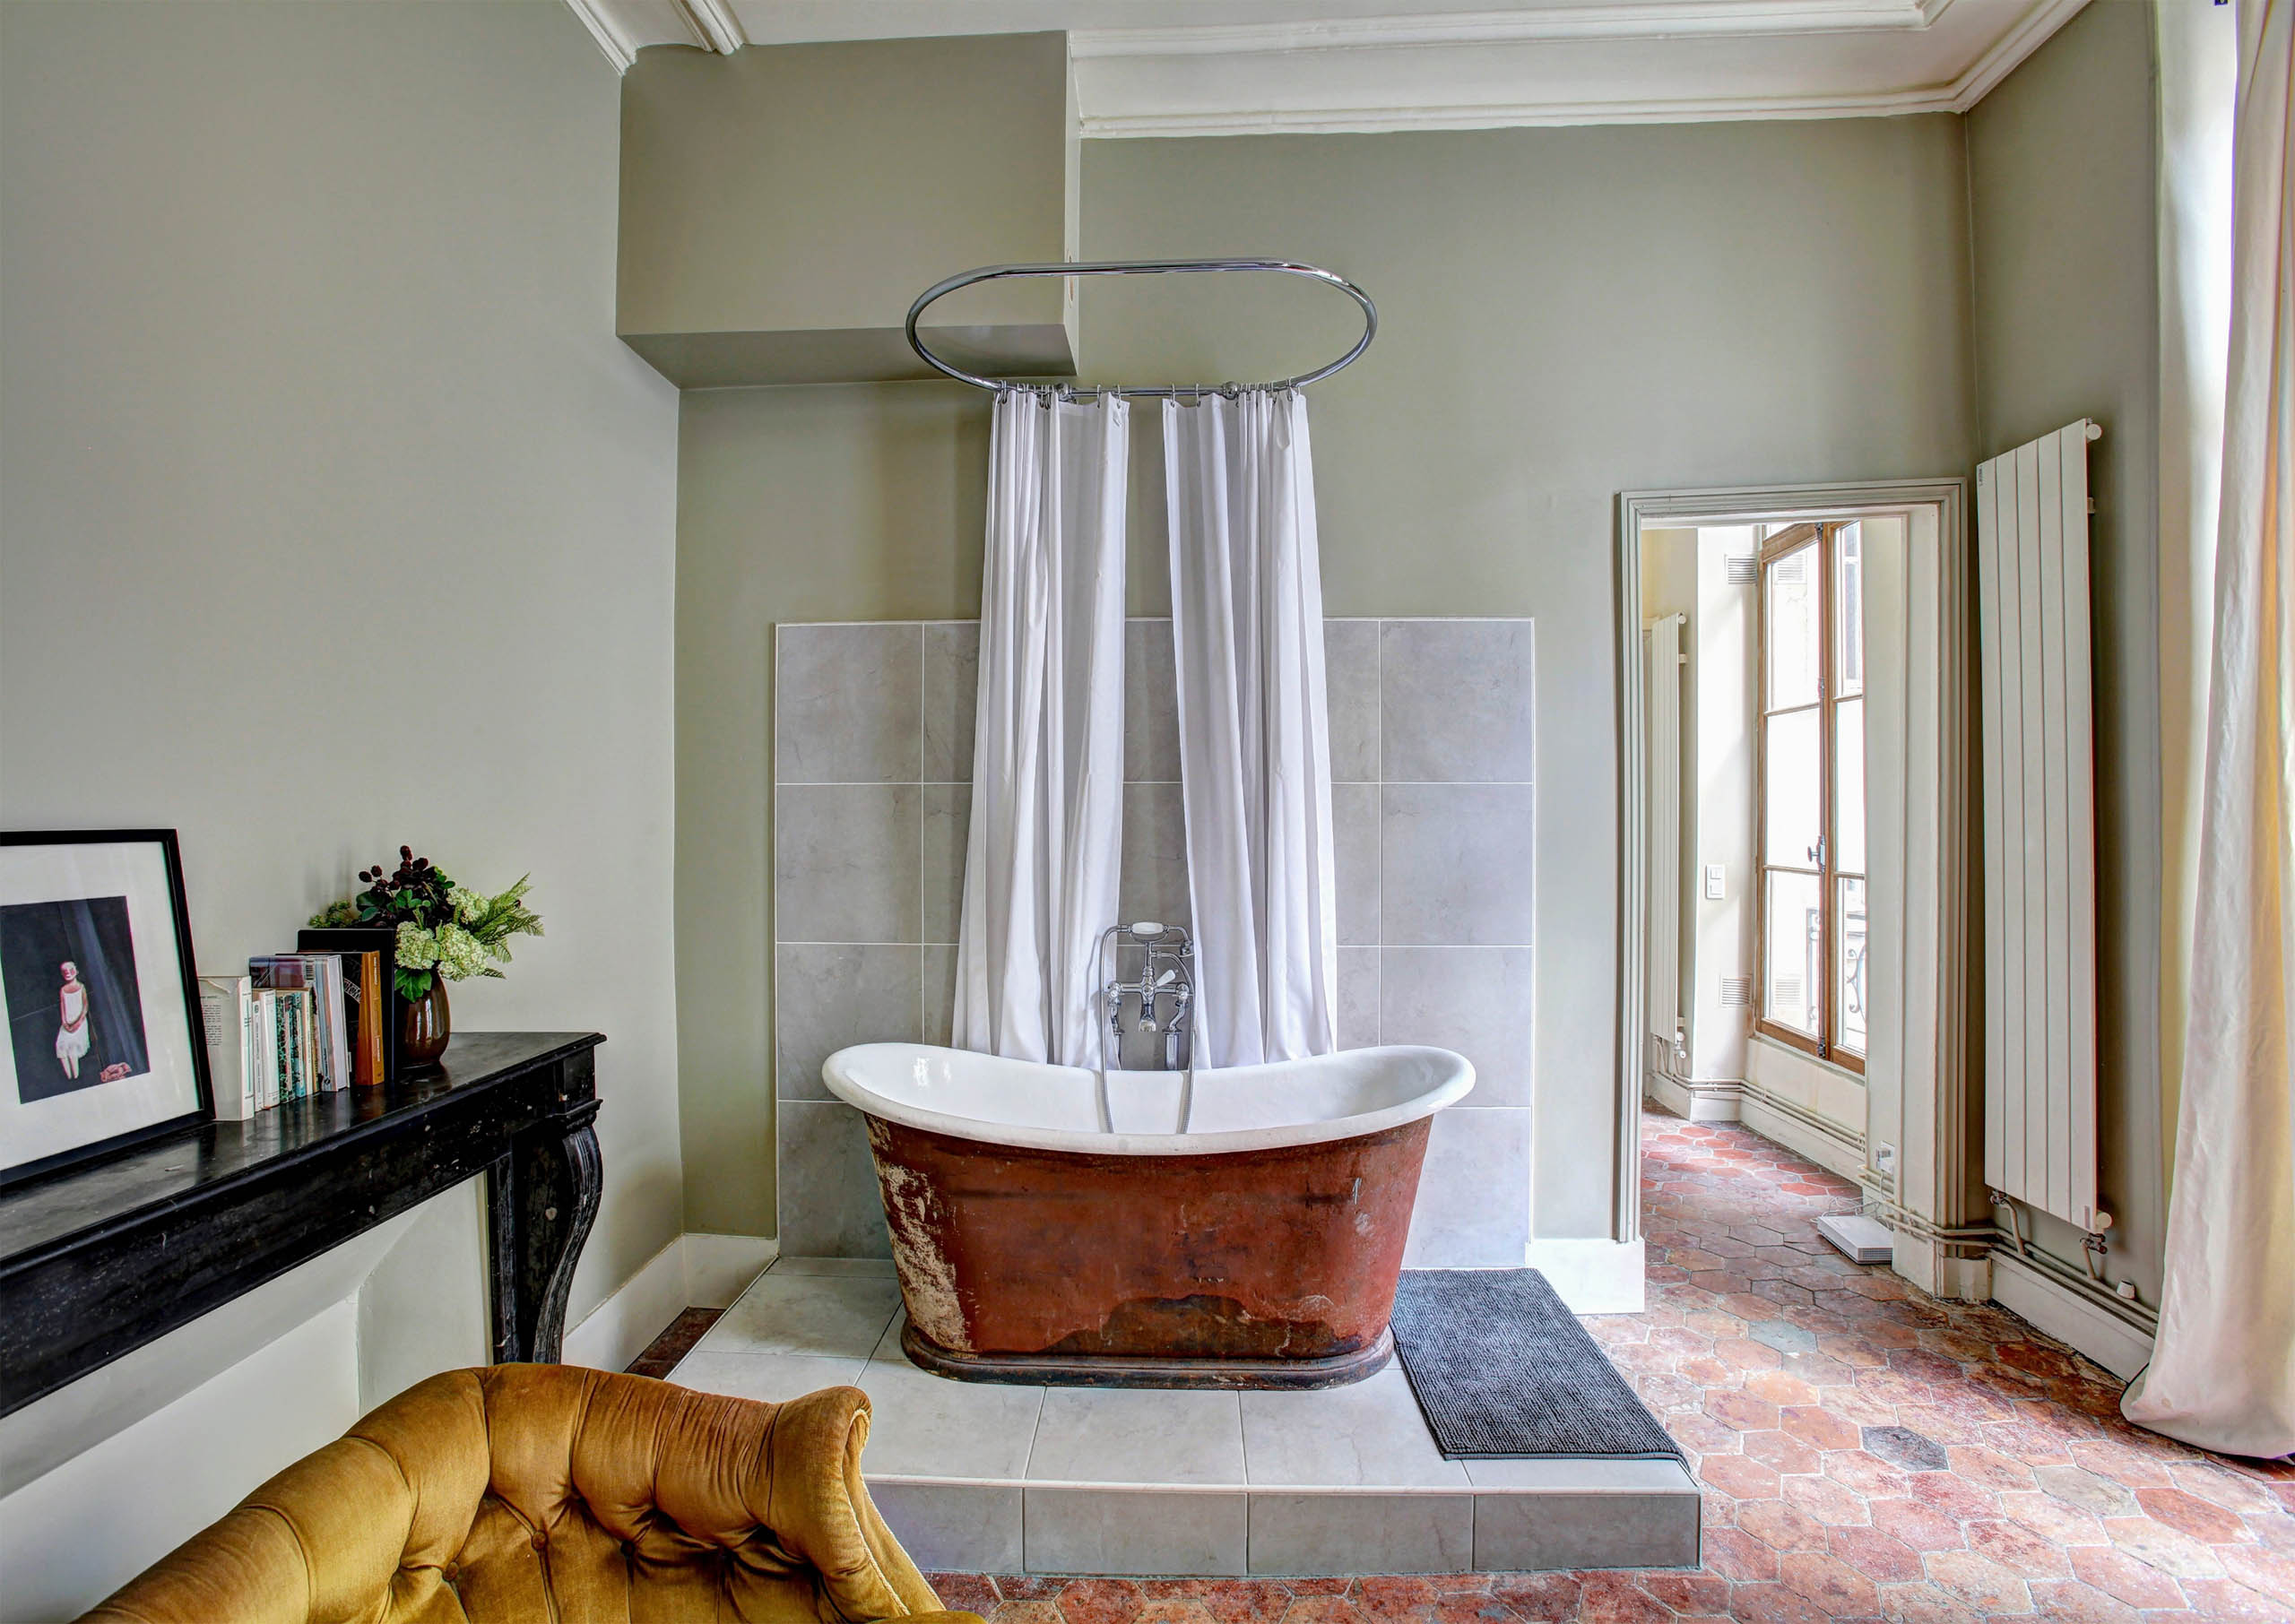 Renovated Bathroom with Pedestal Bathtub on Raised Marble